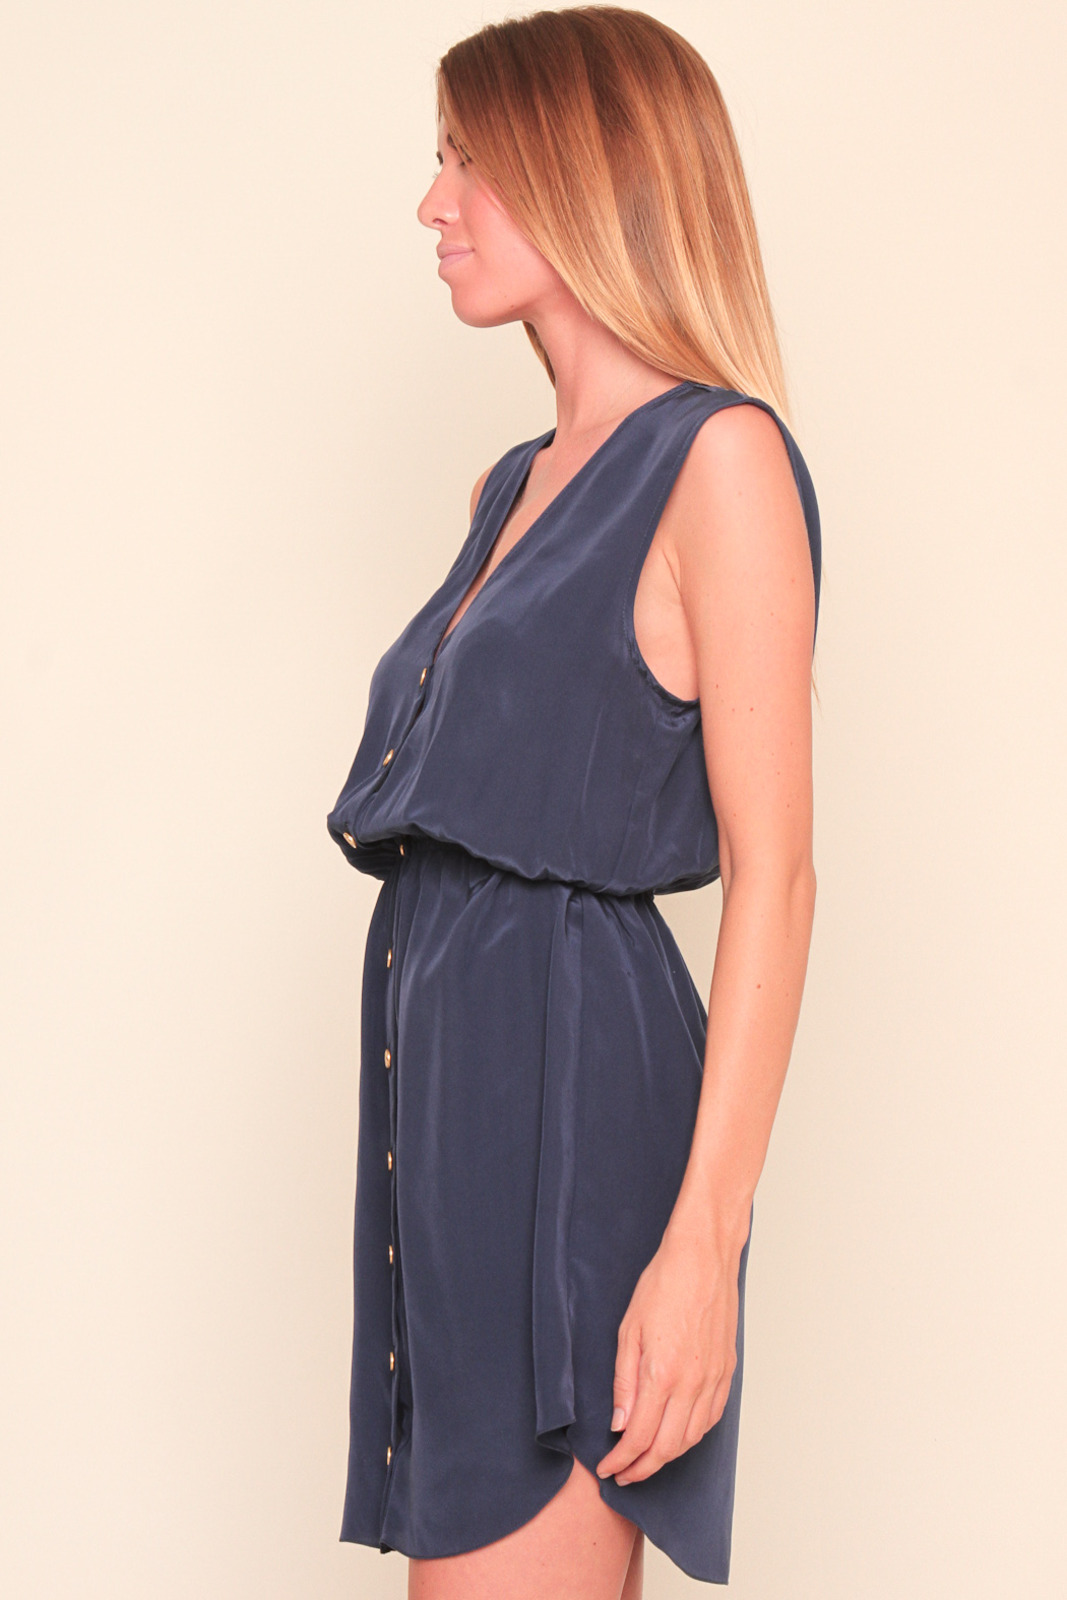 Aaron Ashe Silk Button Down Dress From Brooklyn By Thistle